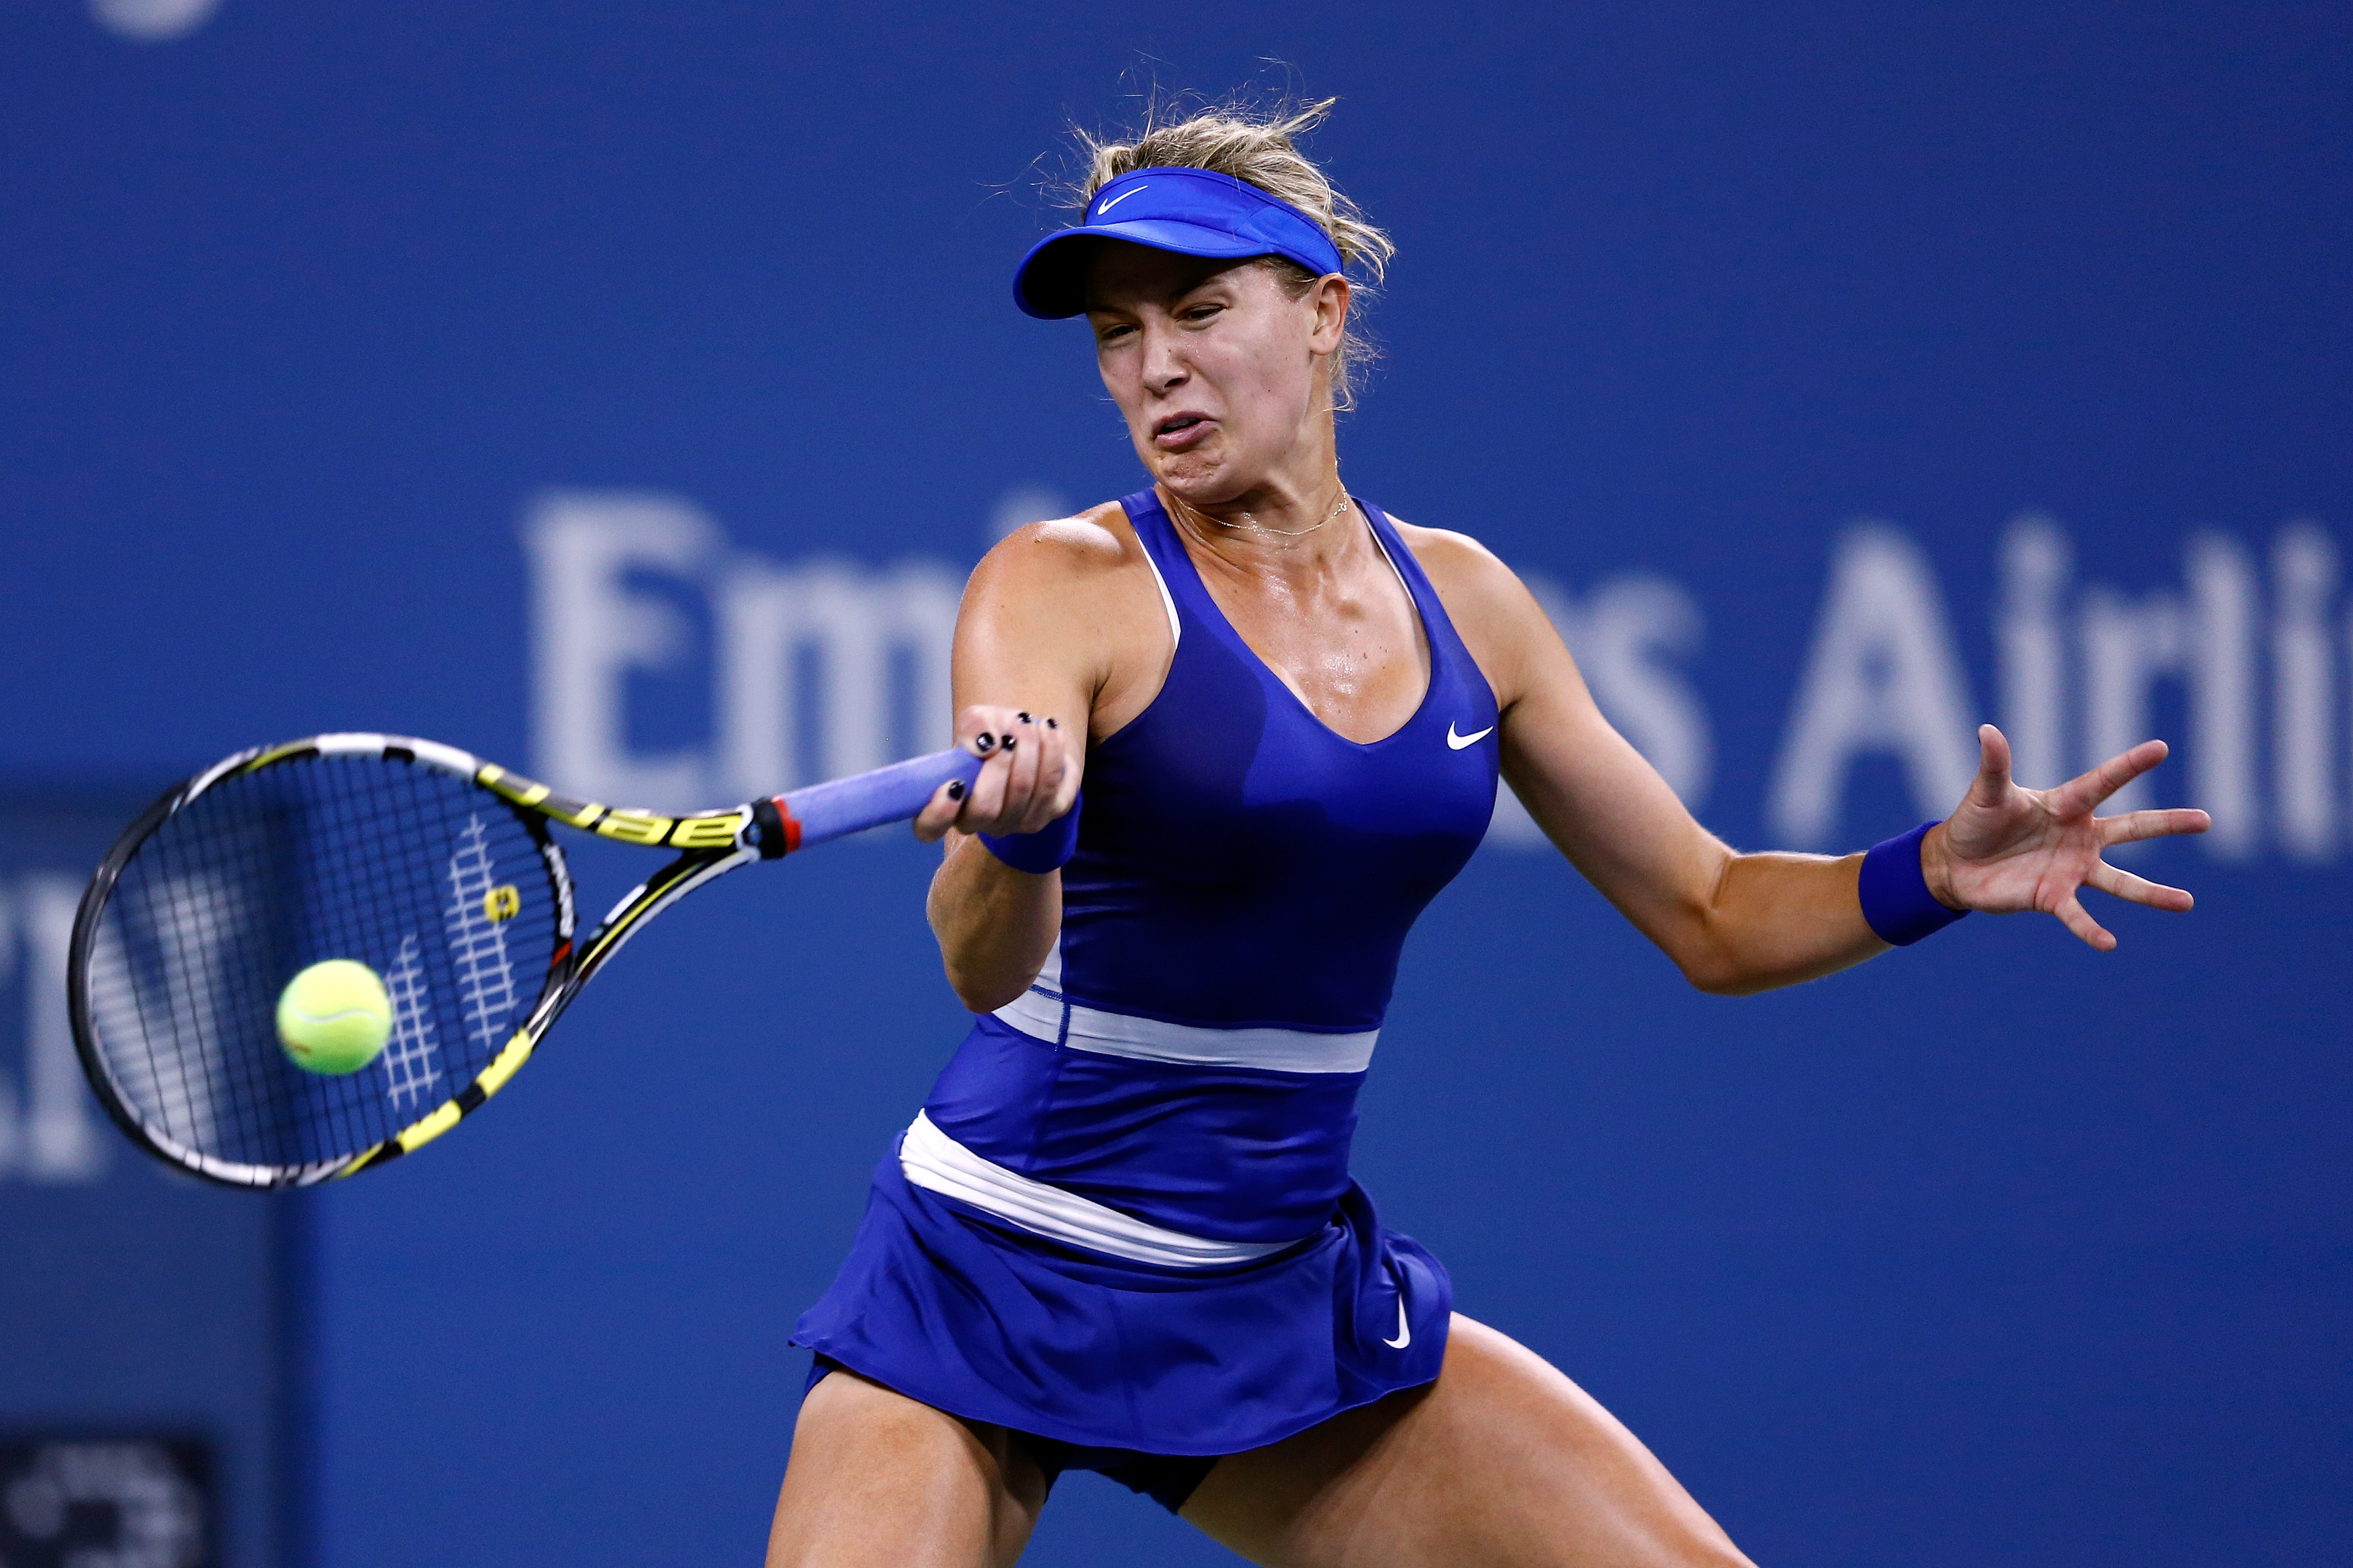 Bouchard's little blue Nike dress was simple yet distinctive.